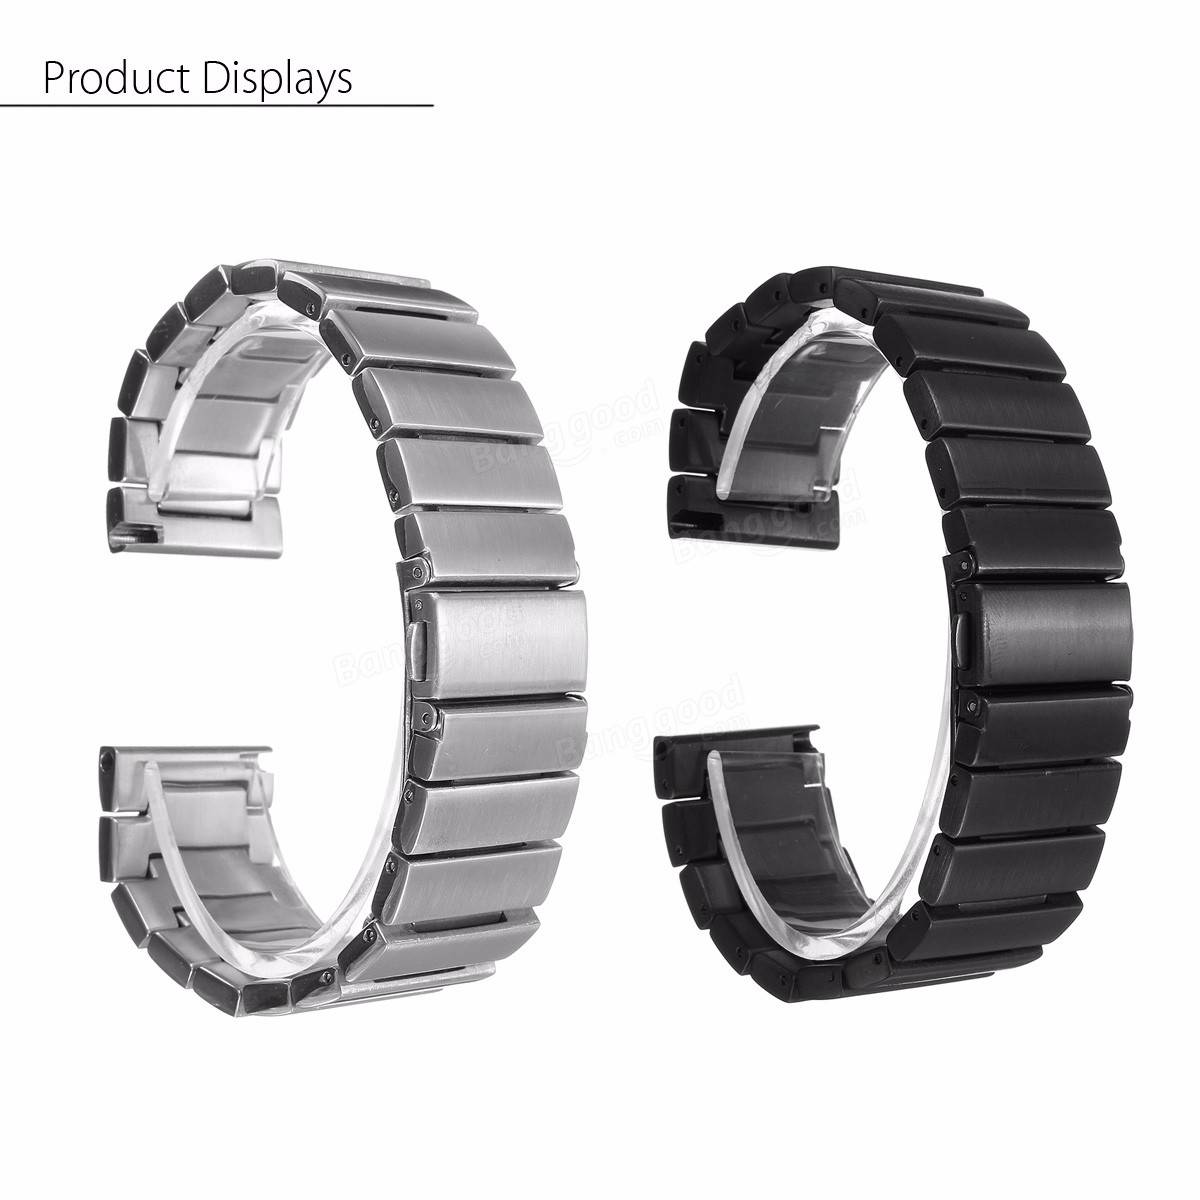 stainless steel metal watch band strap bracelet for samsung gear s3 frontier sale. Black Bedroom Furniture Sets. Home Design Ideas